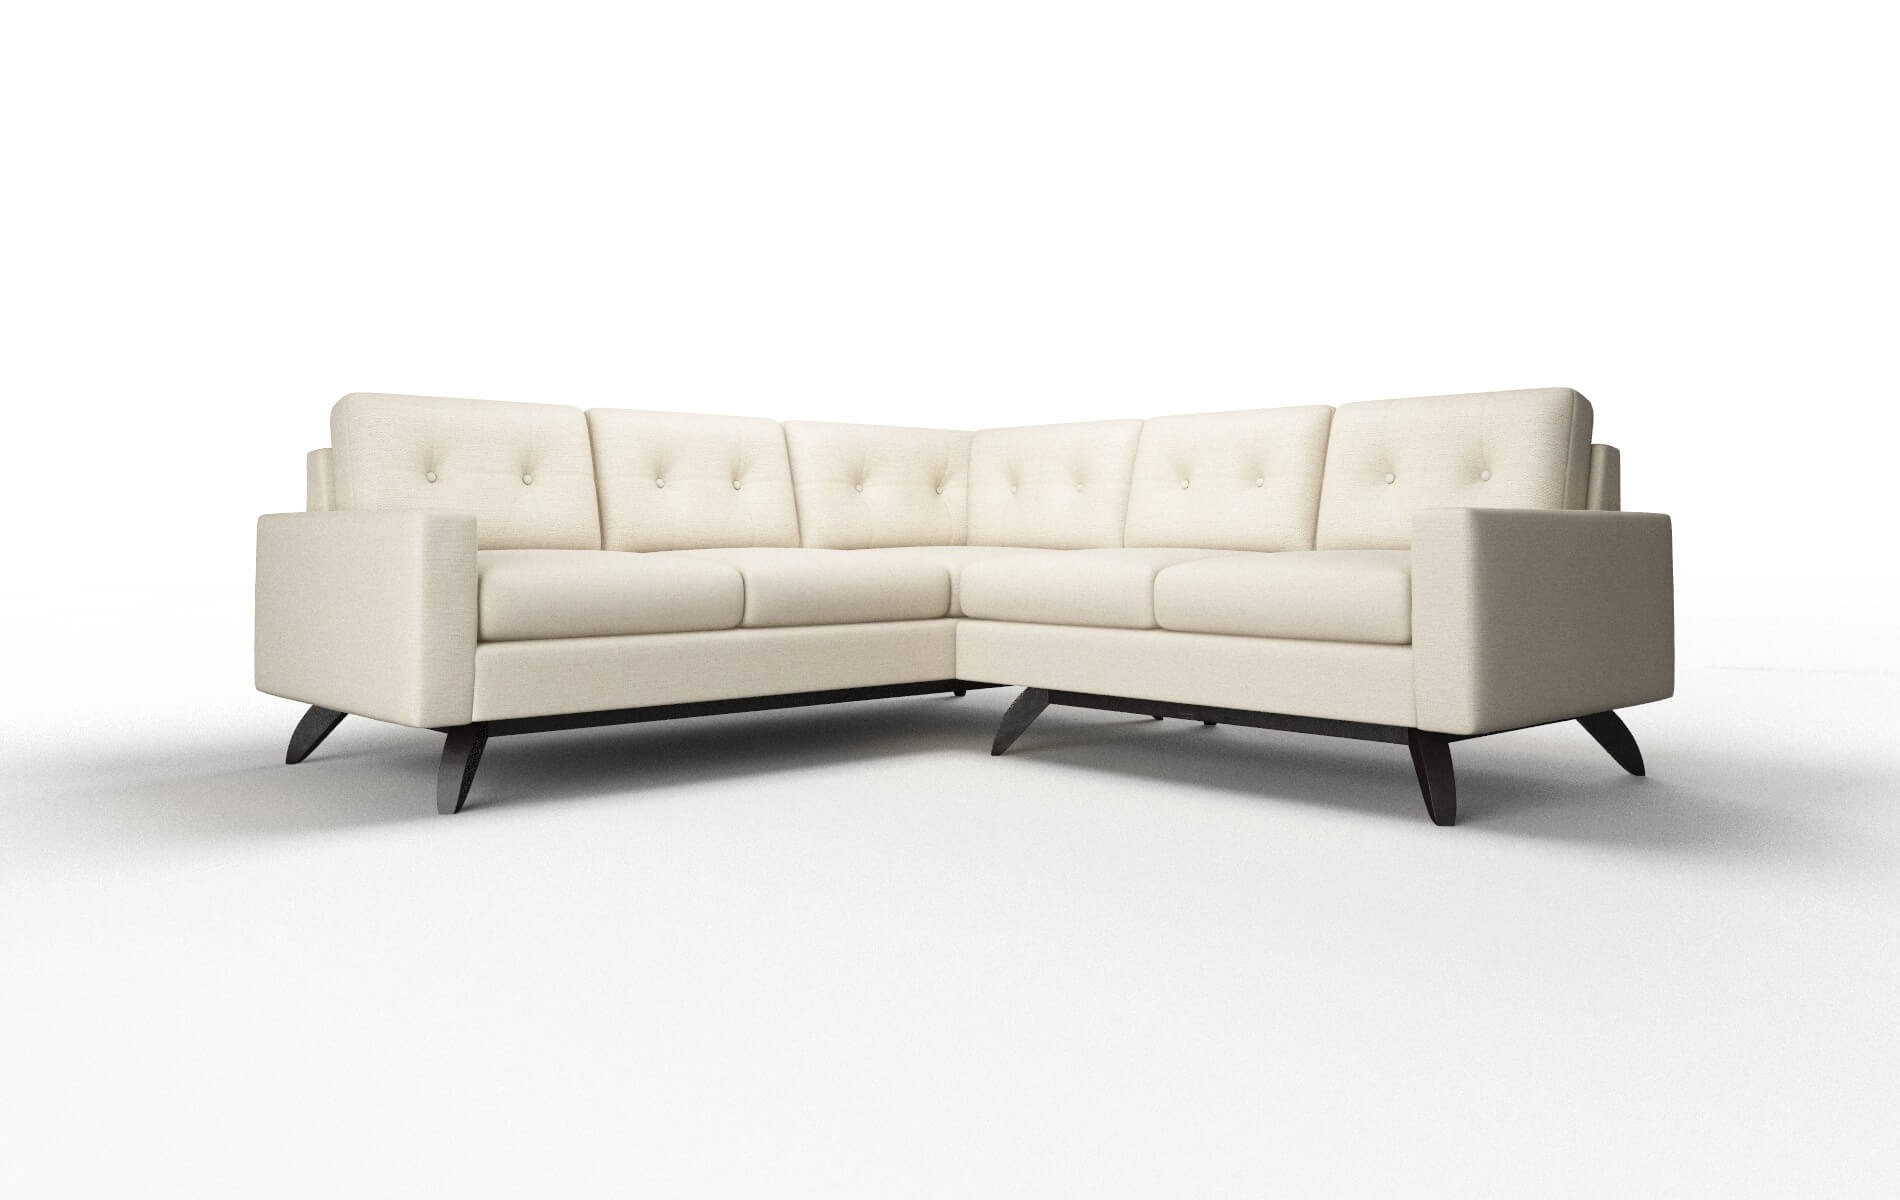 Milan Phoenix Birch Sectional - DreamSofa